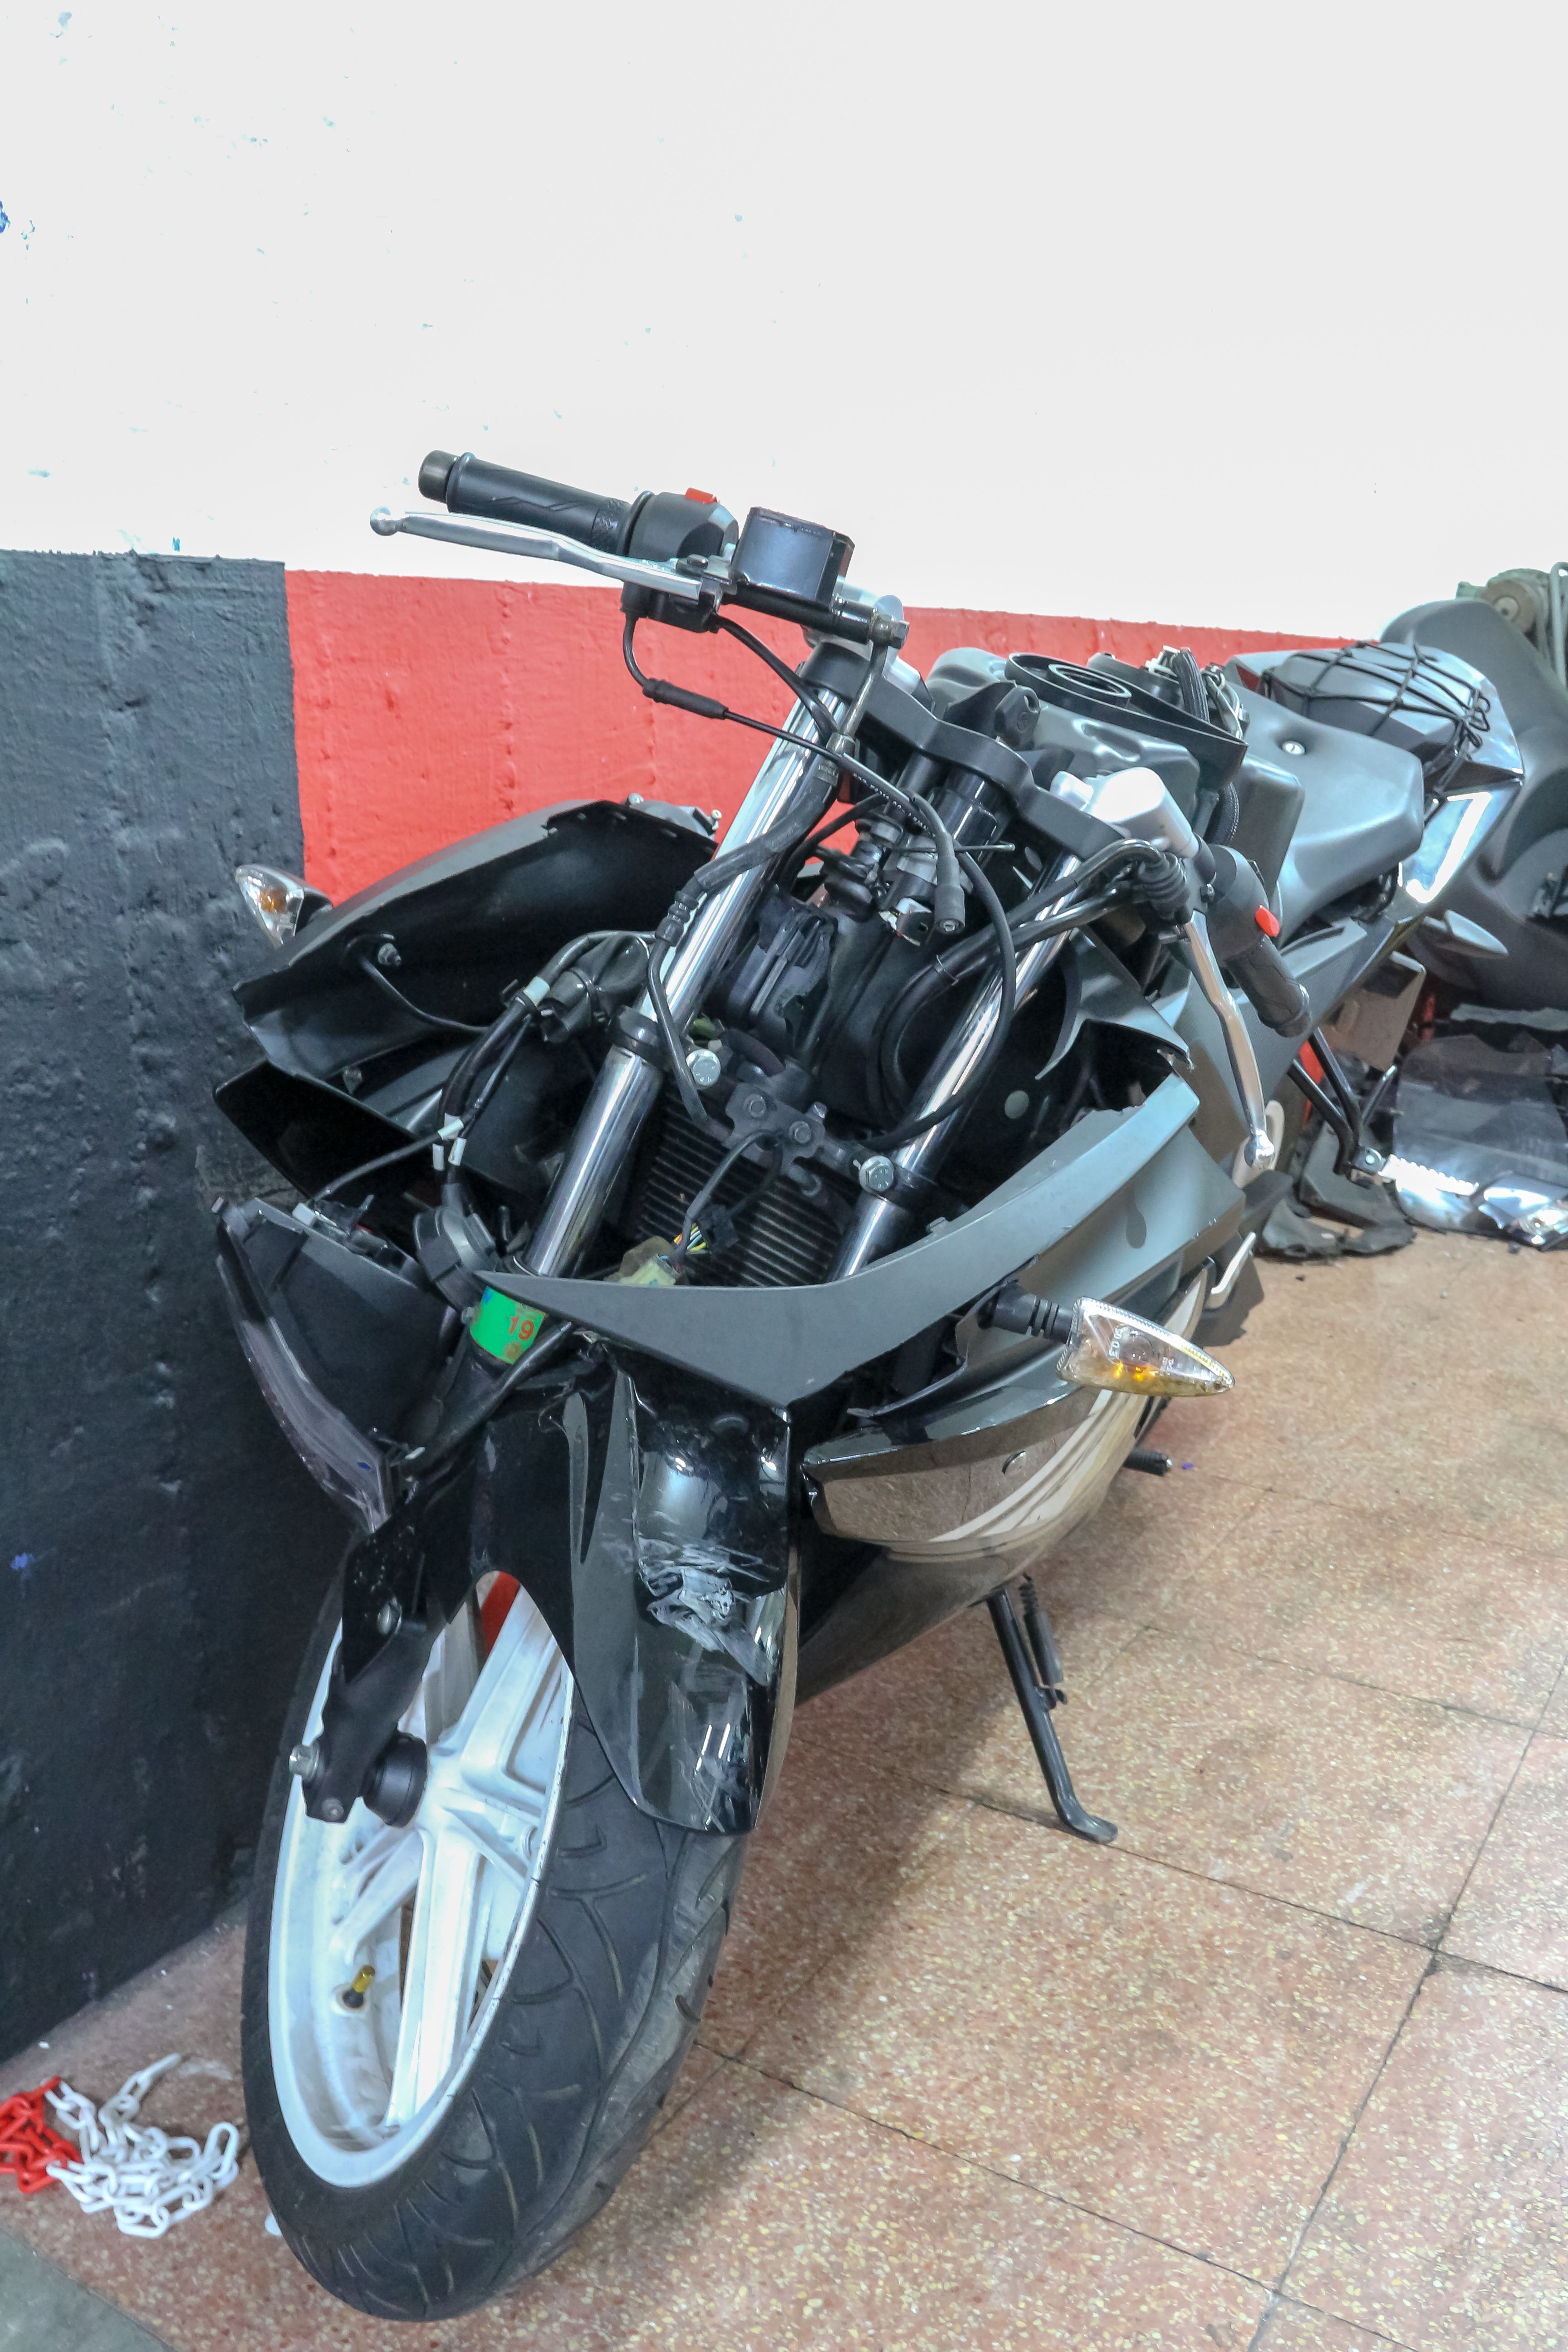 Mecánicos especializados en motos en Madrid